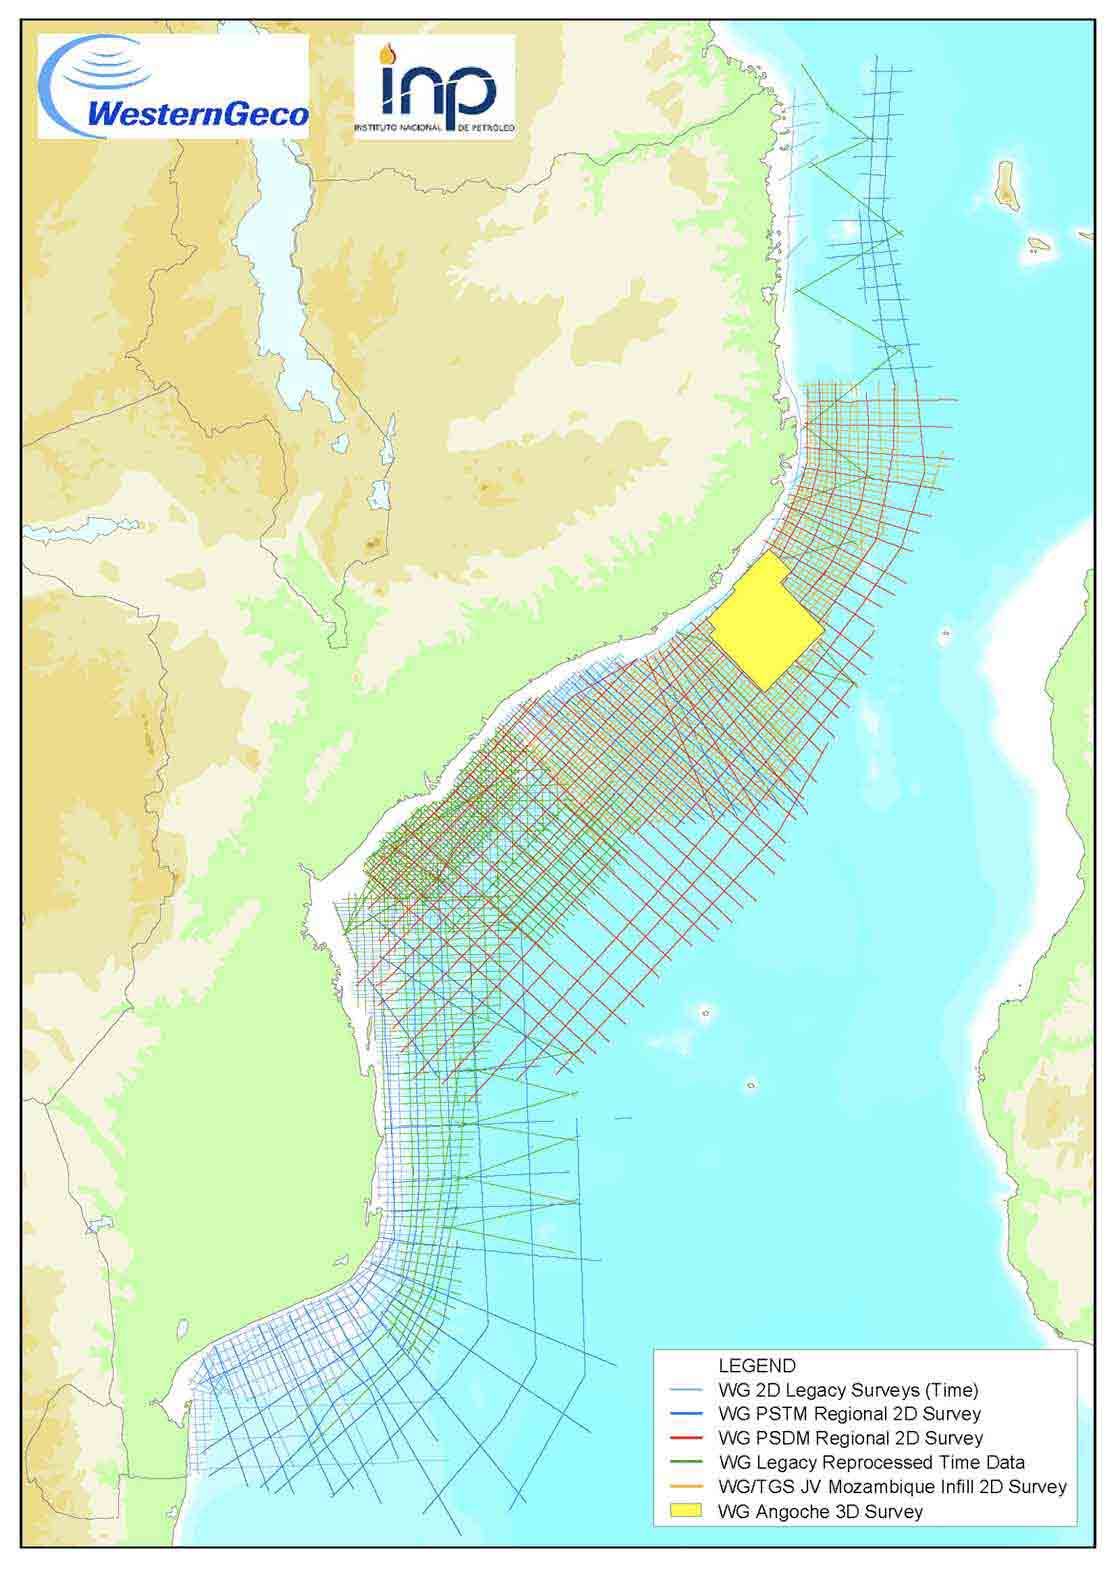 Mozambique map for 2020 licensing bid